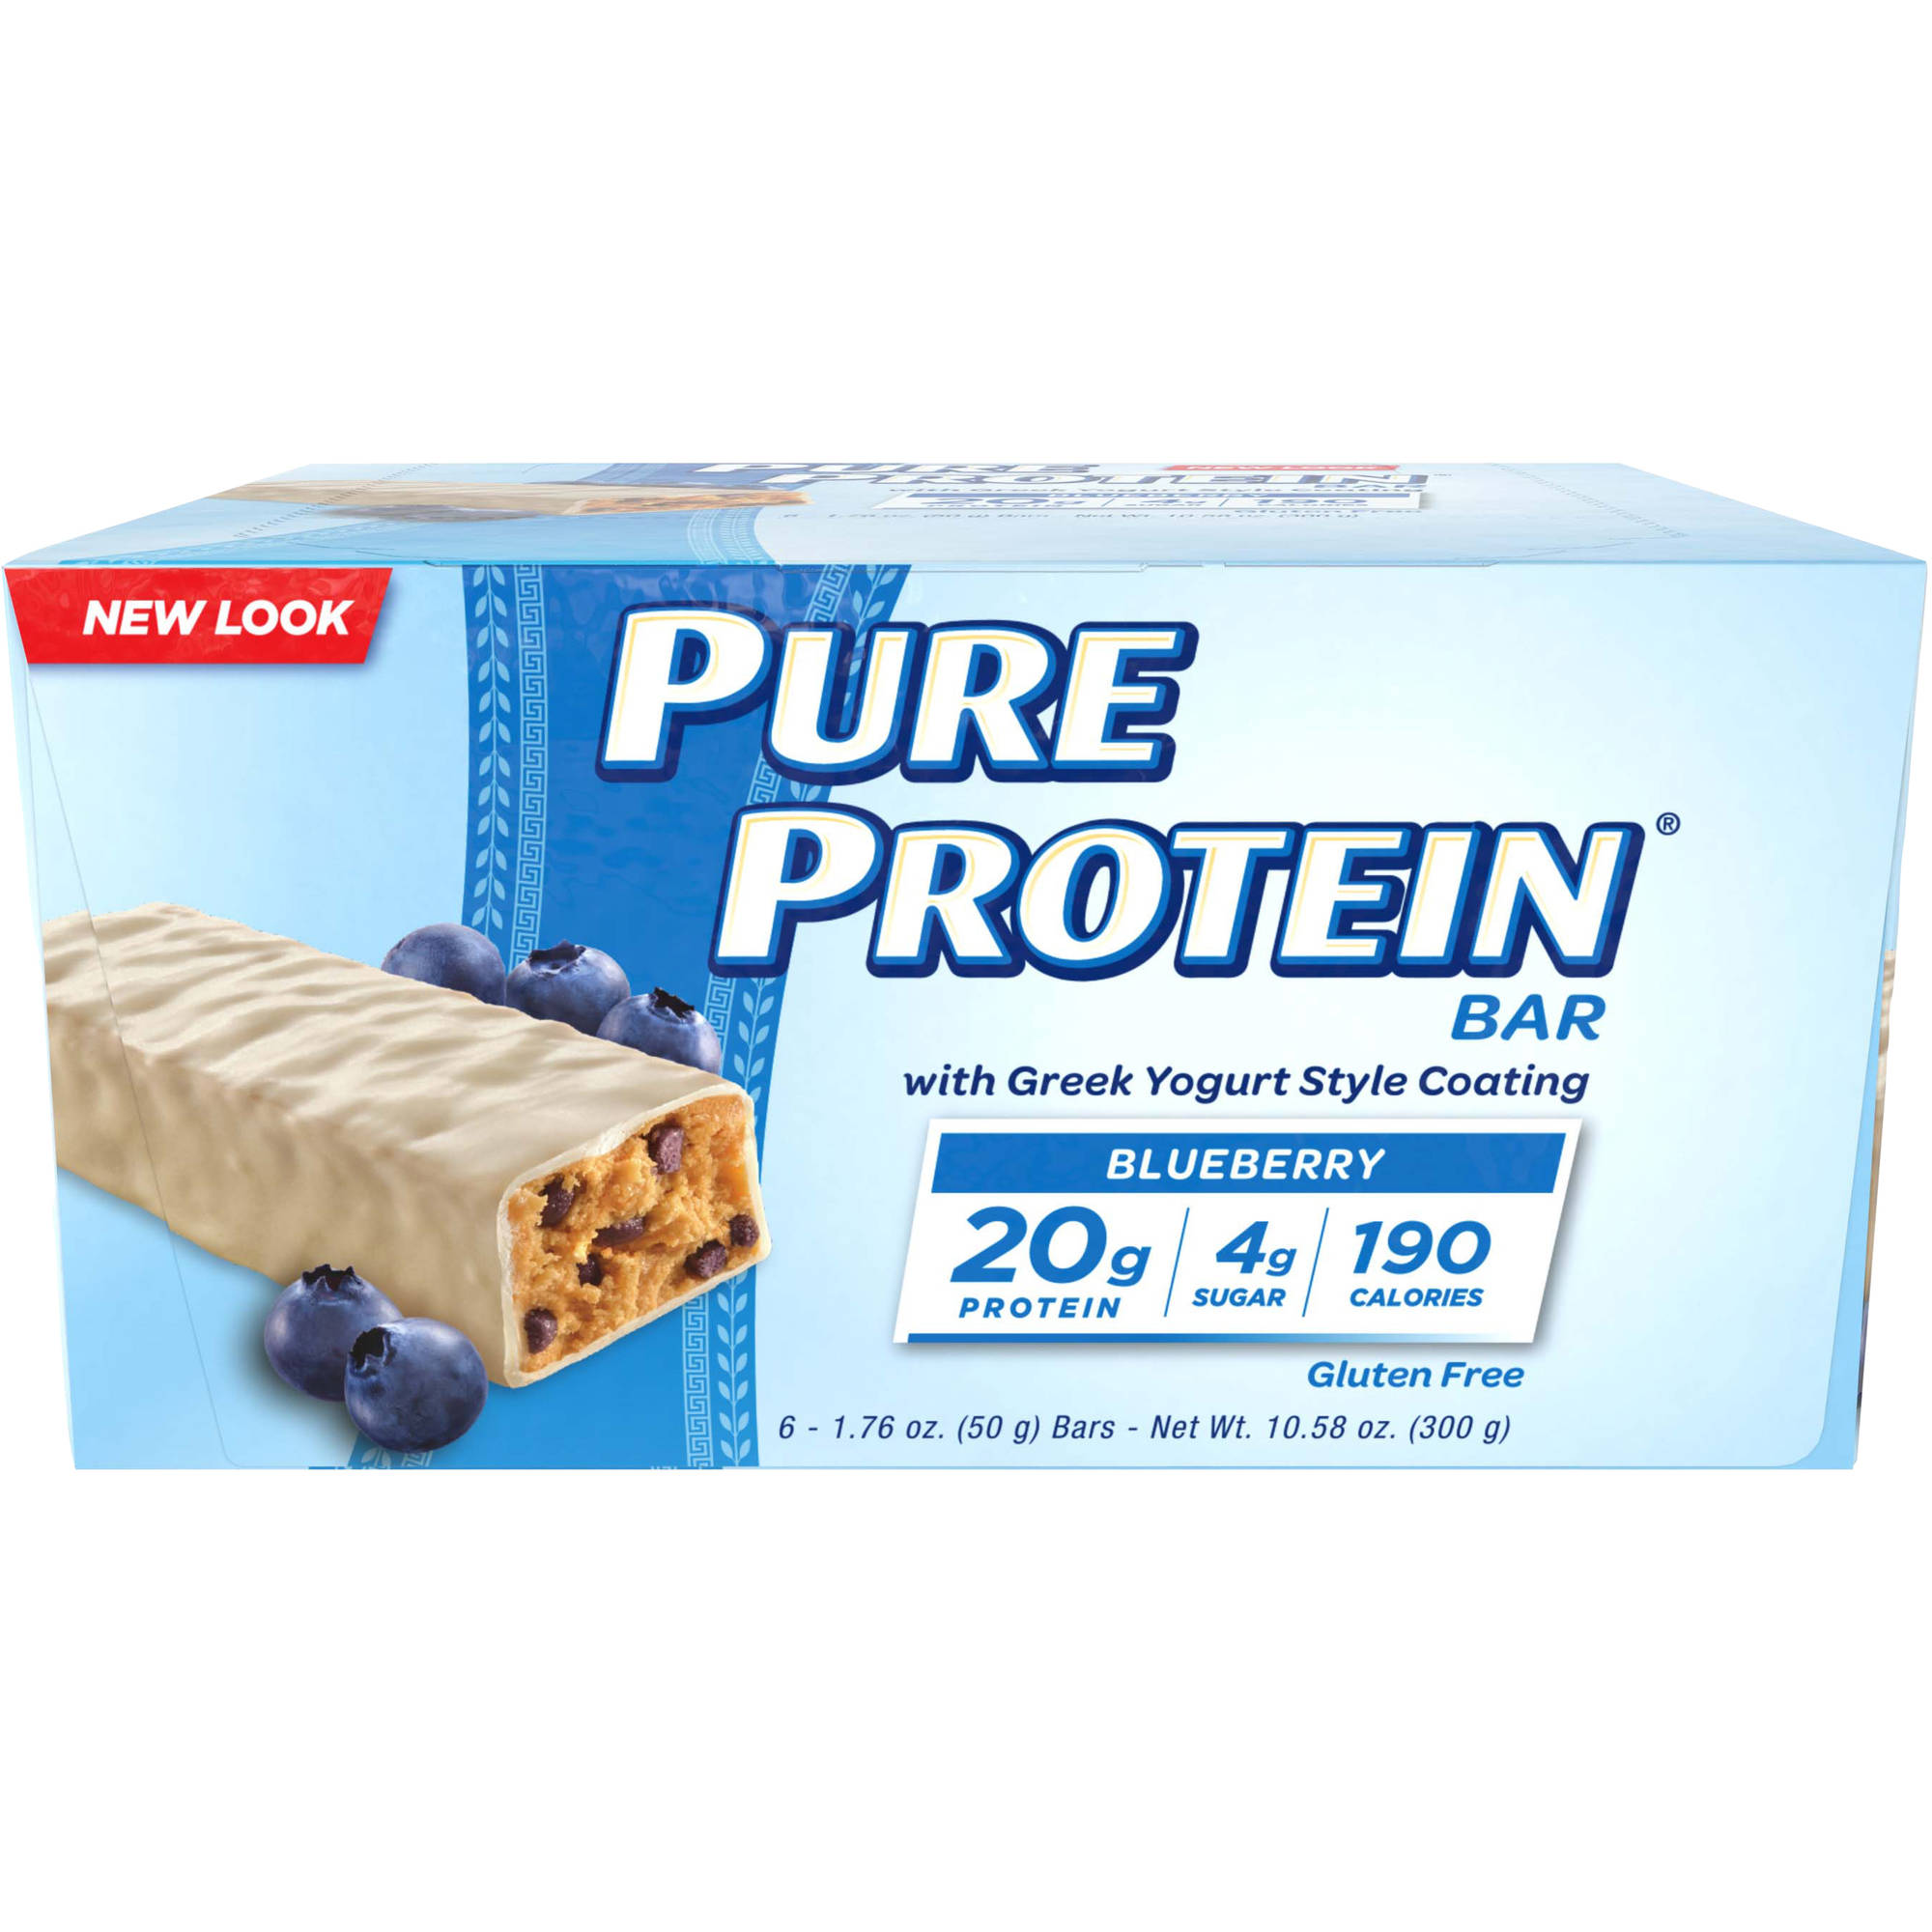 Pure Protein Blueberry Protein Bars with Greek Yogurt Style Coating, 1.76 oz, 6 count